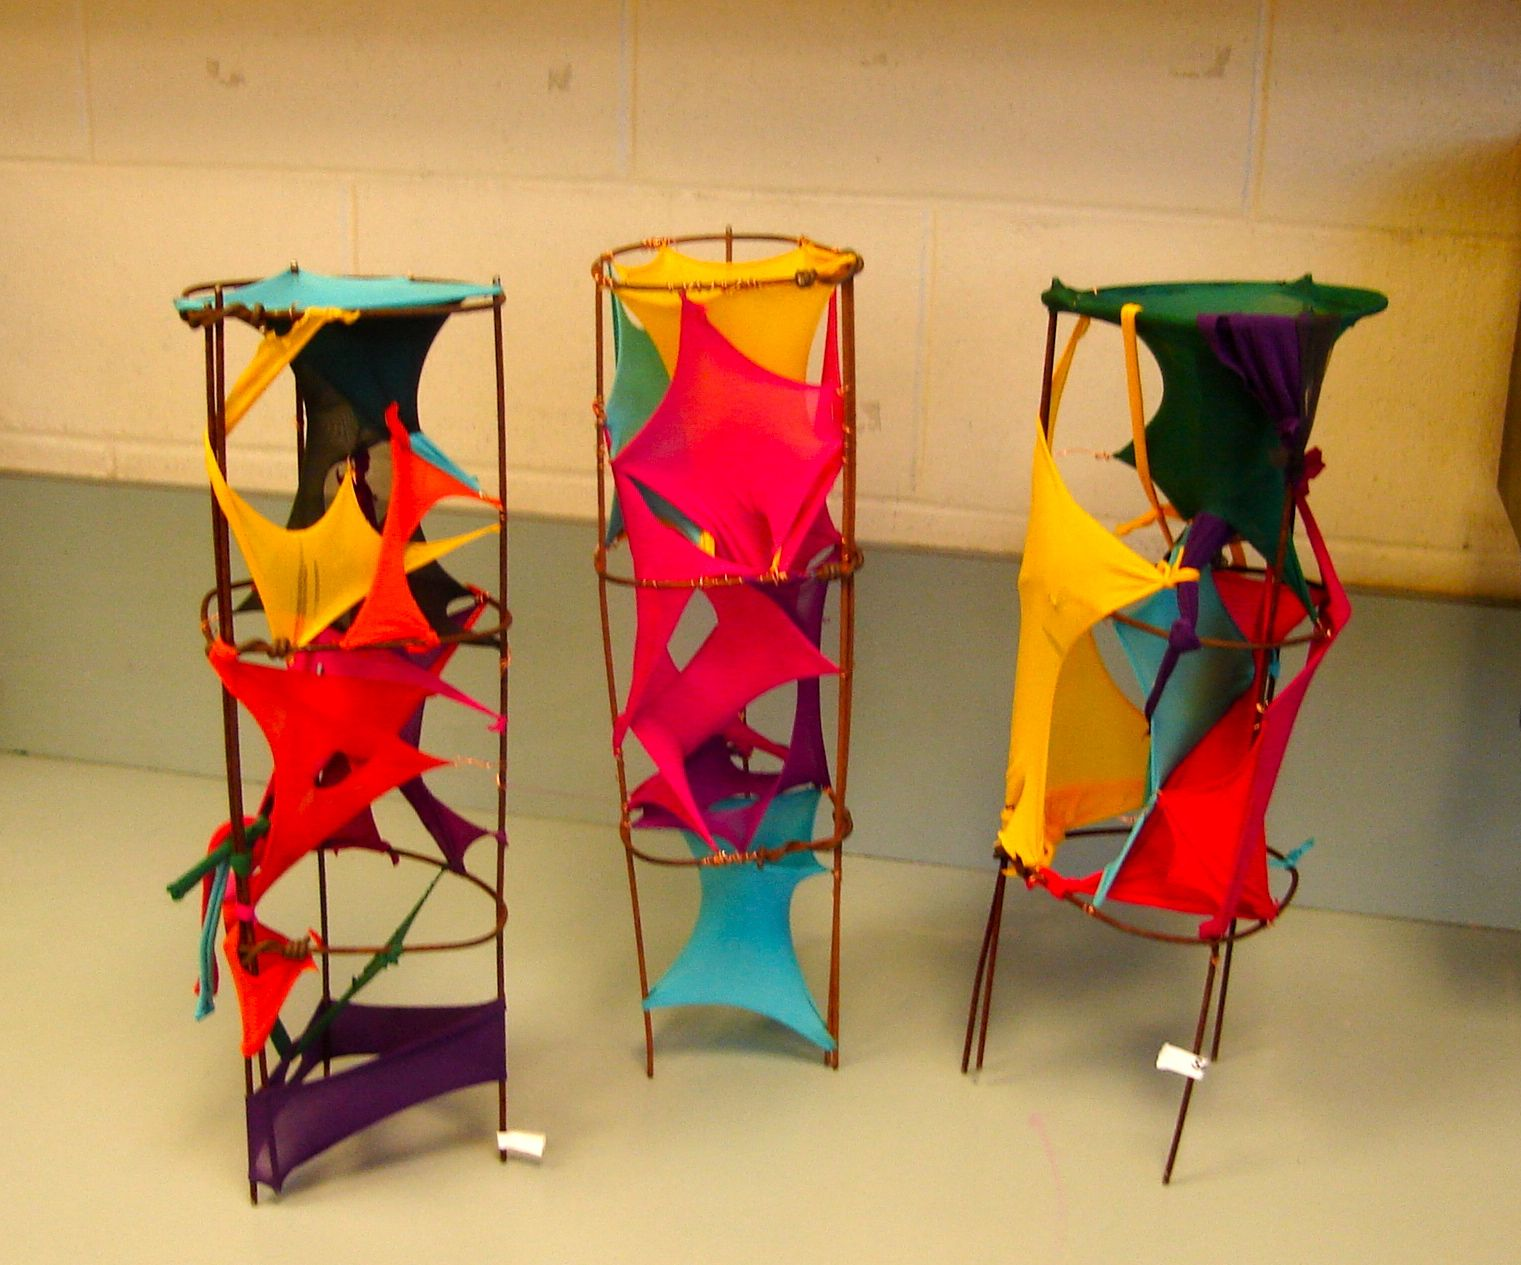 recycled art projects   Grants in Action: Recyclable Art   Classroom ... for Recycled Projects For Teenagers  183qdu